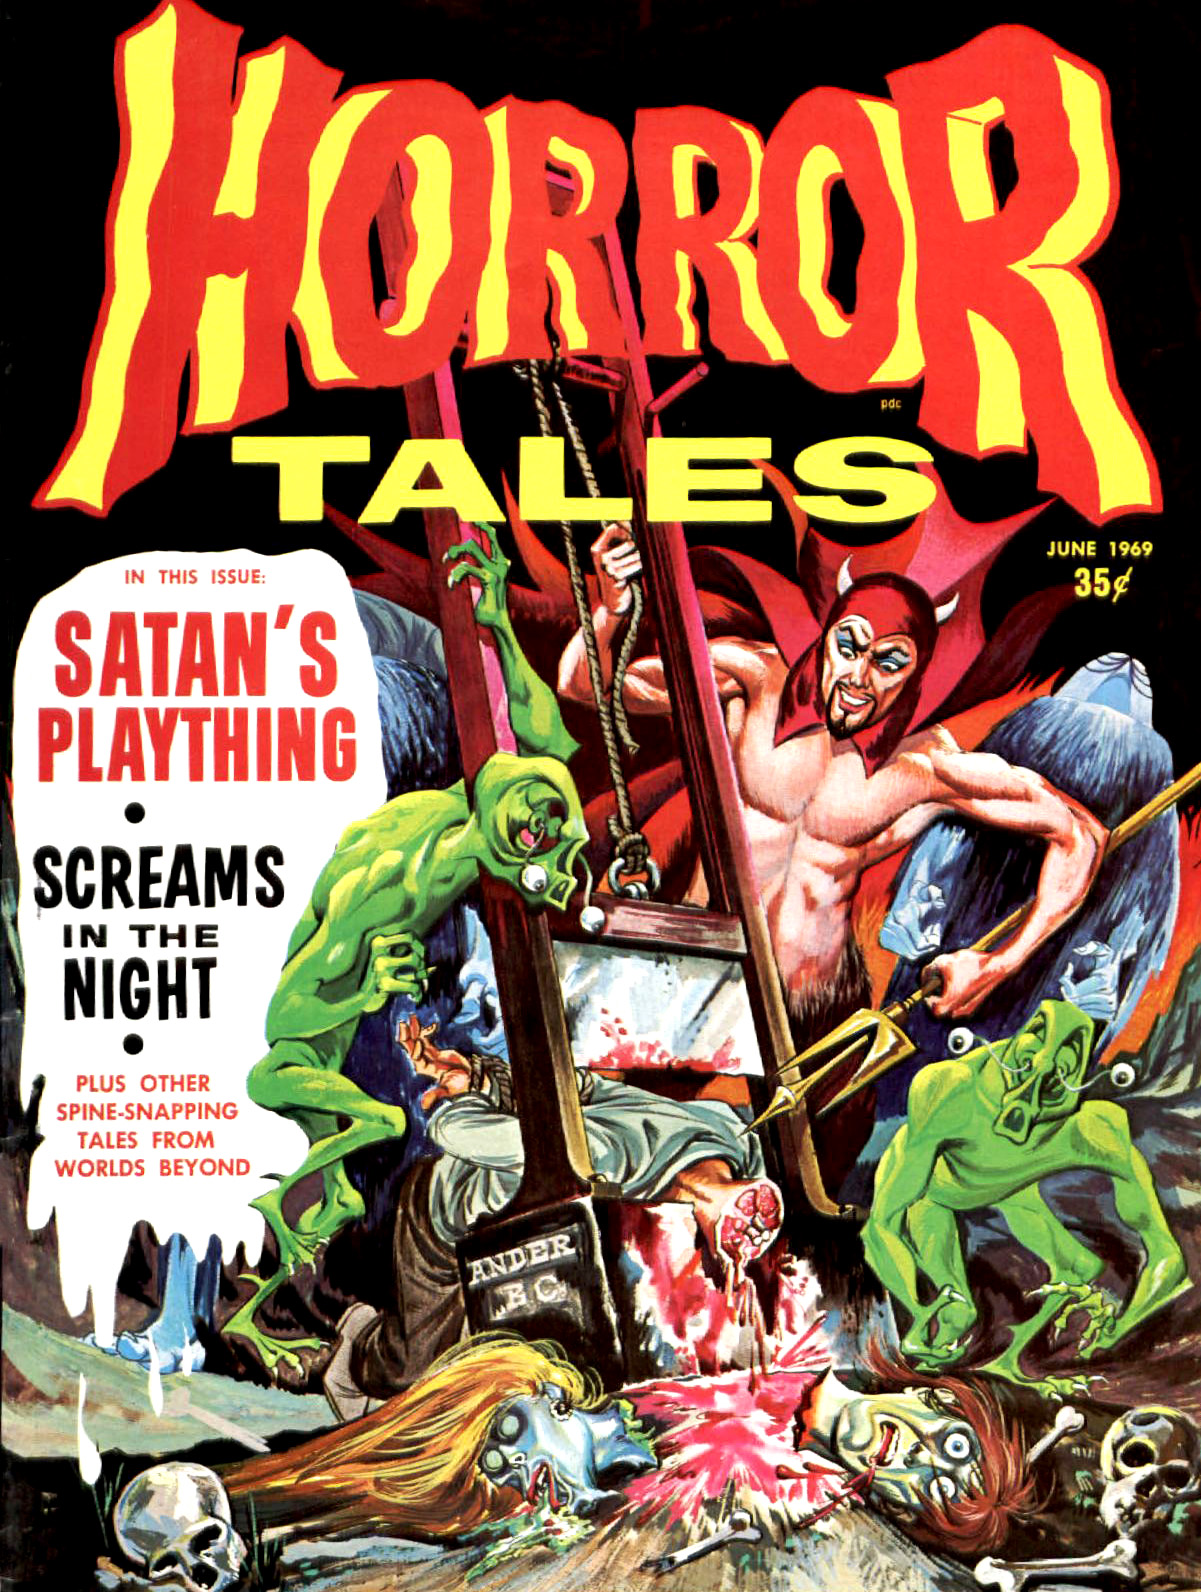 Horror Tales - Vol. 1 #7 (Eerie Publications, 1969)